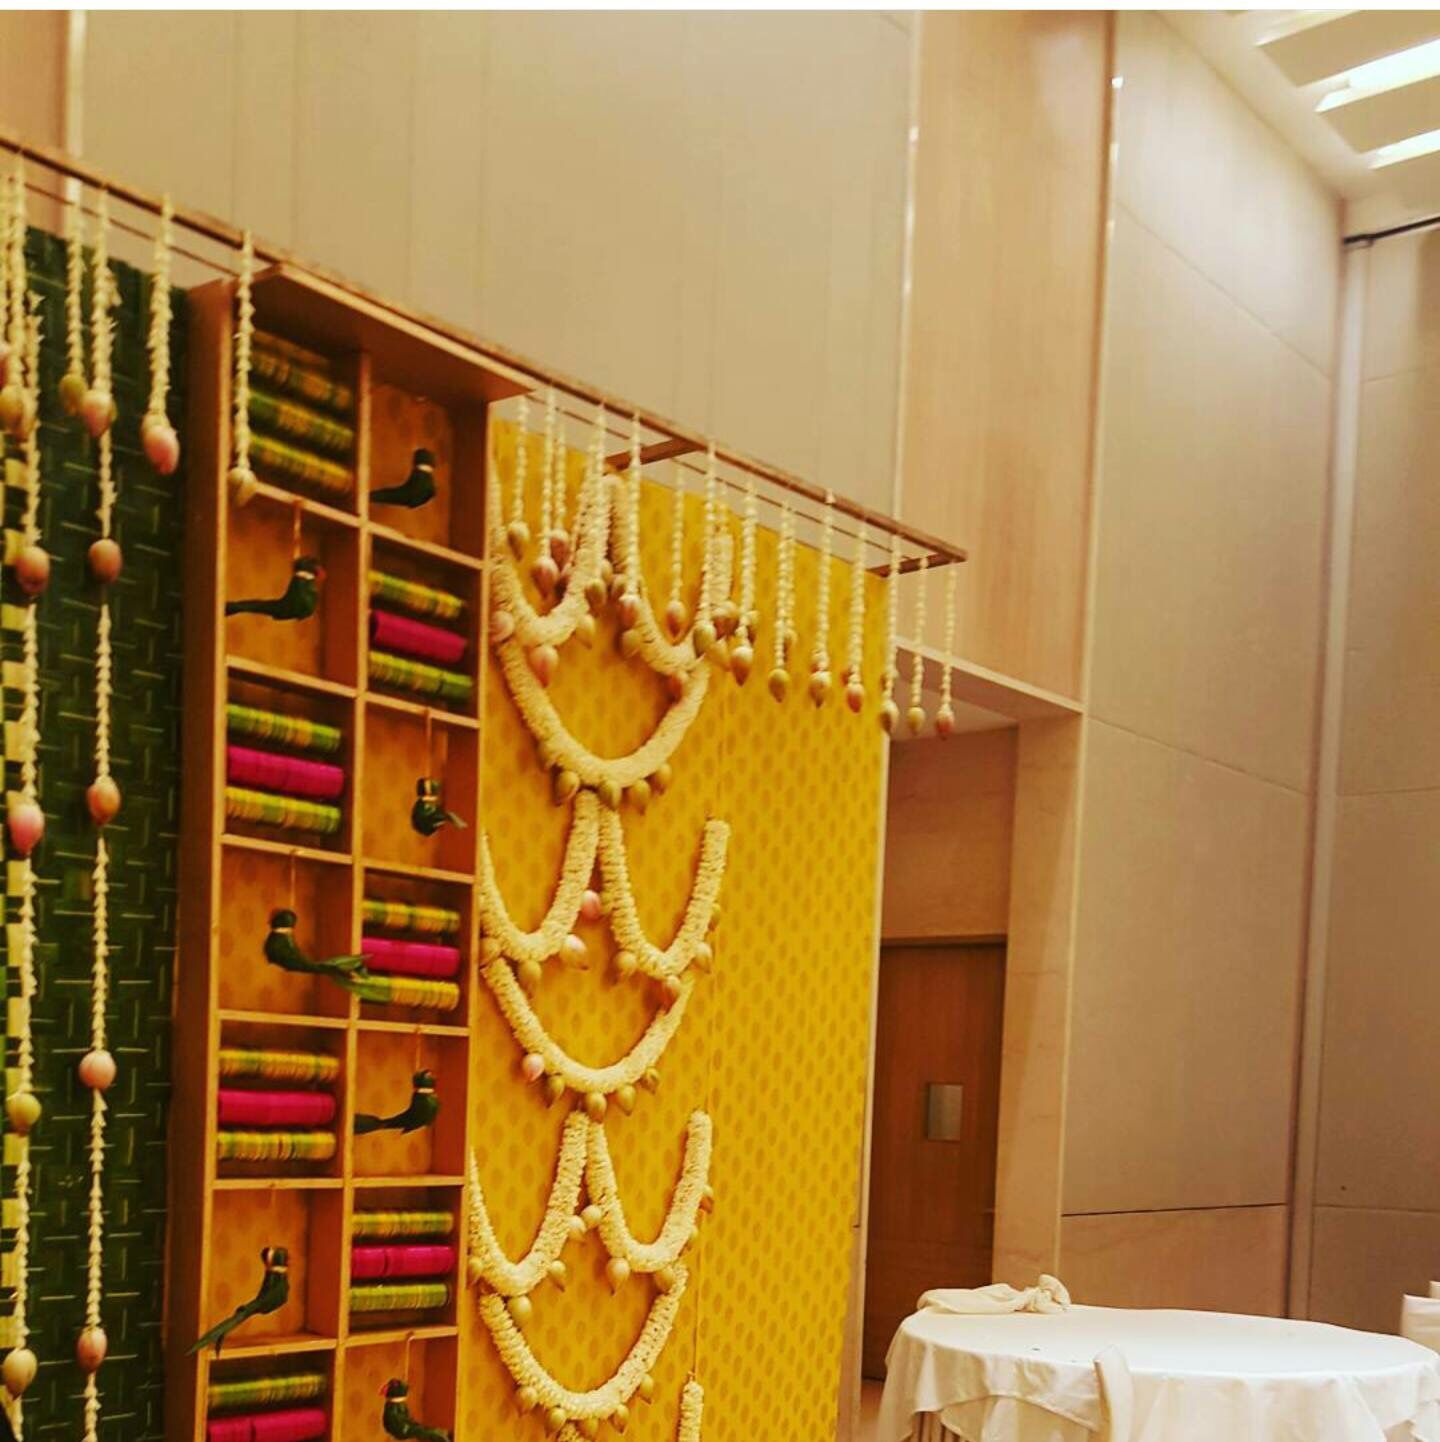 South Indian Wedding Decoration Ideas: Indian Wedding Decor #indian #wedding